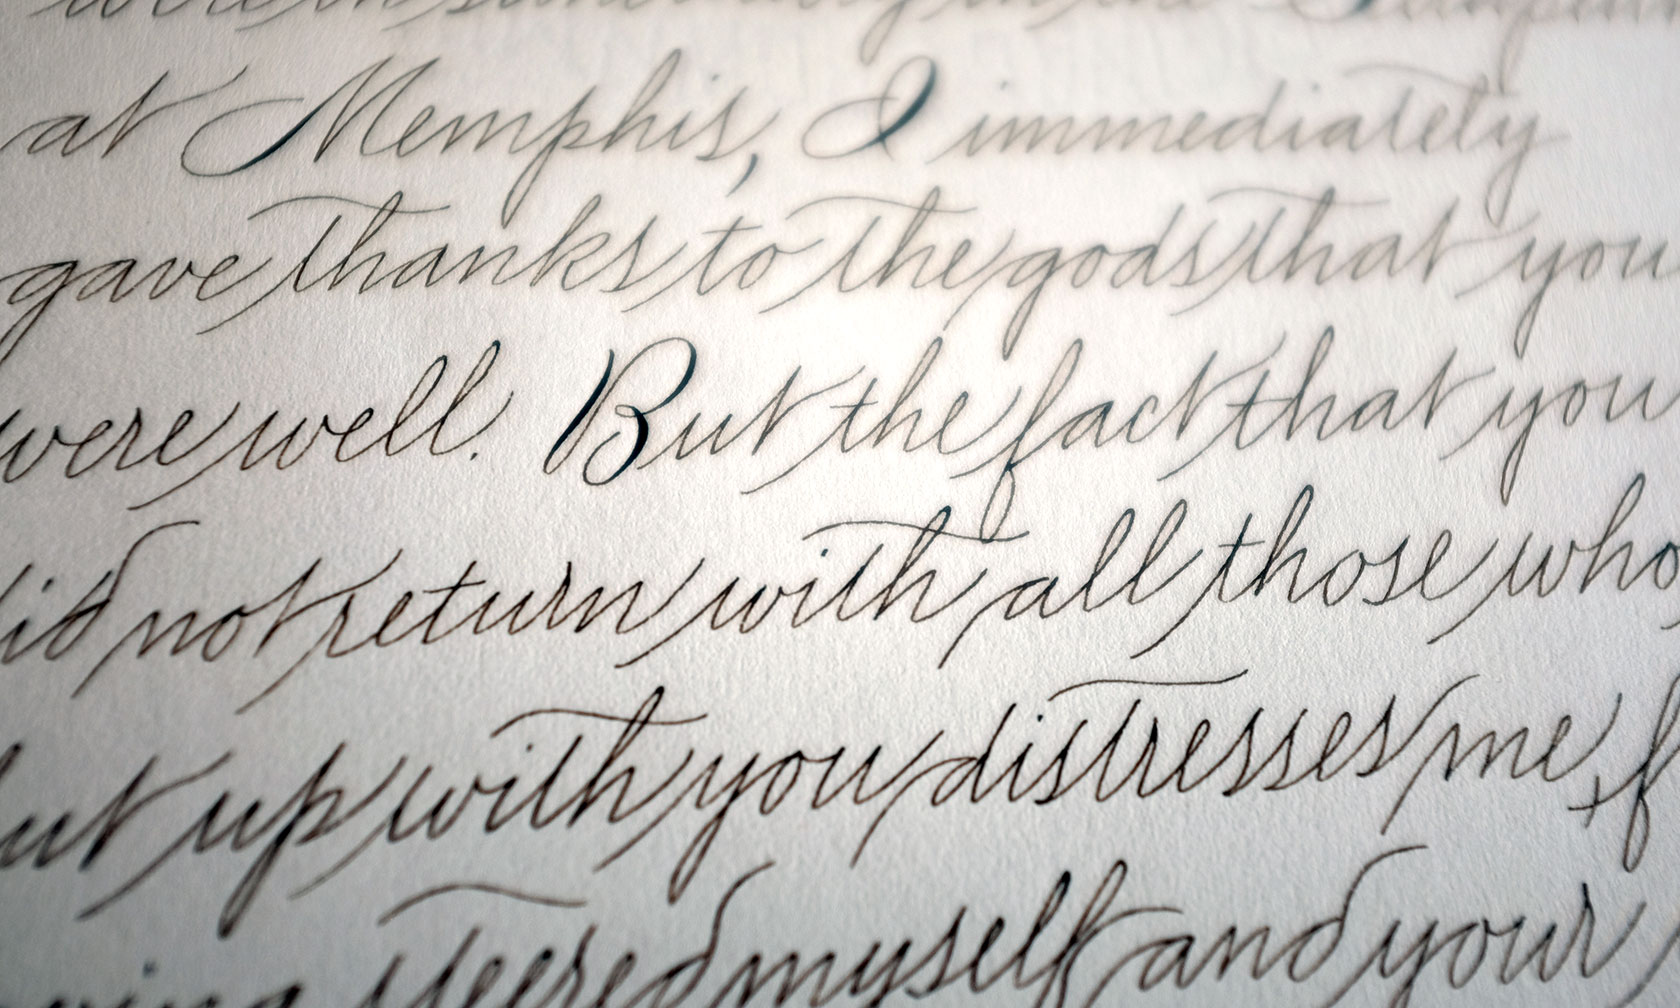 Emily Modern A True Handwriting Style With American Roots Fluent And Graceful Lovely For Letters Here In Quite Free Variation